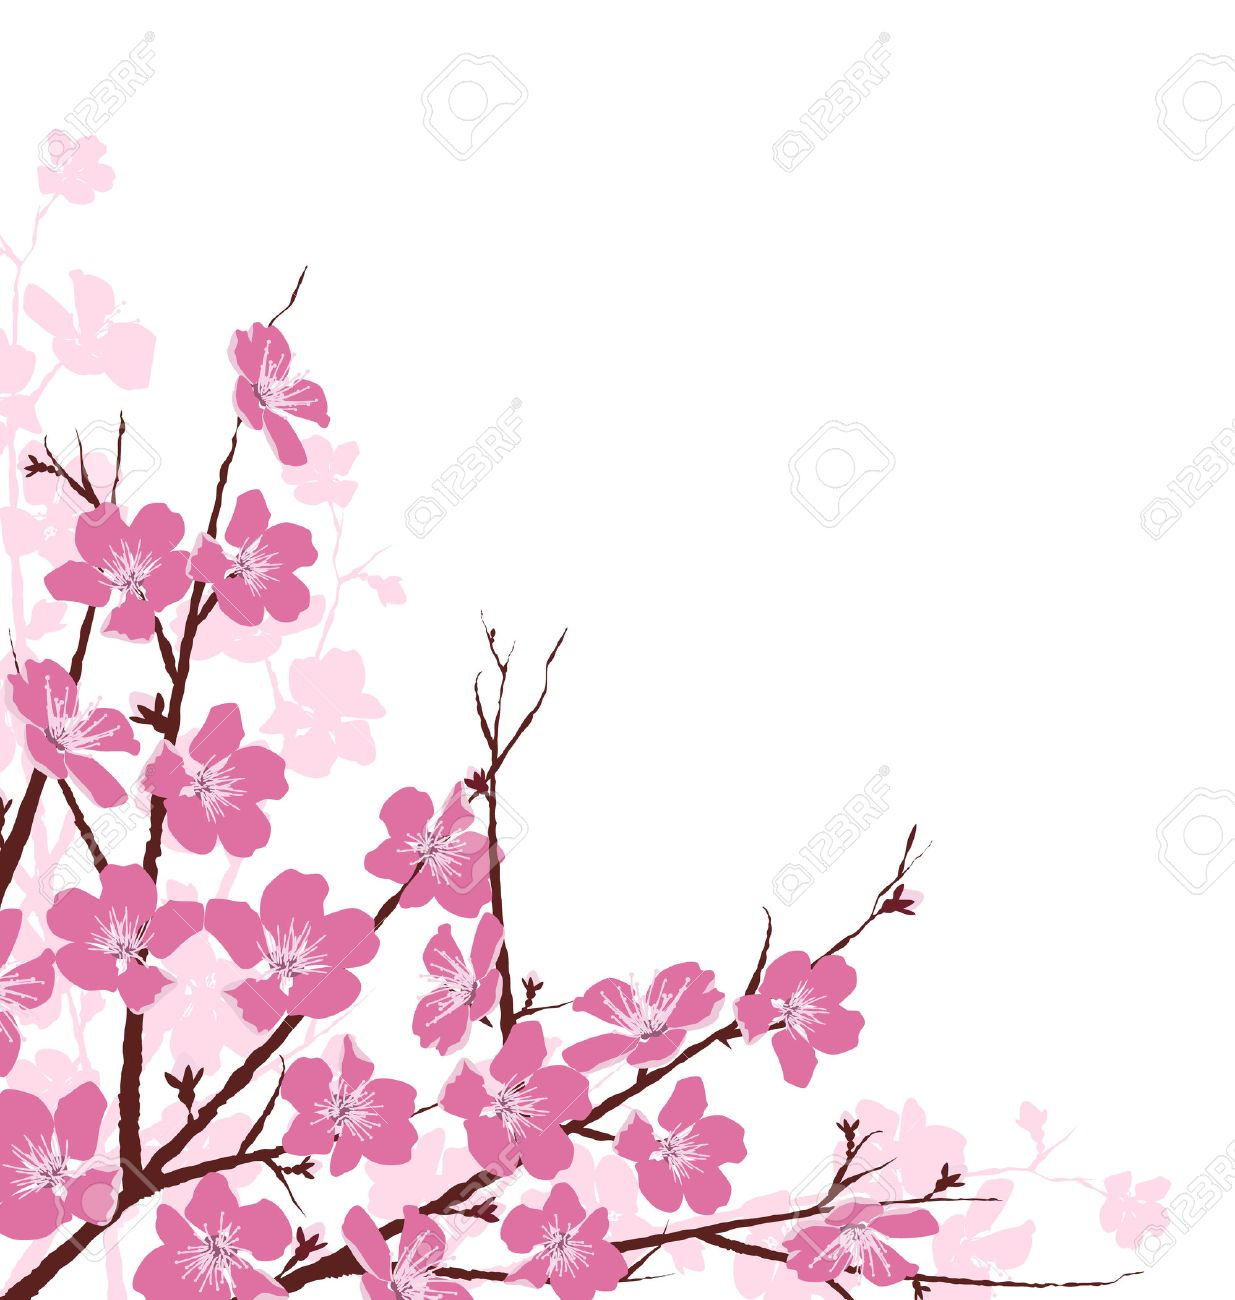 Branches with Pink Flowers Isolated on White Background - 42528687